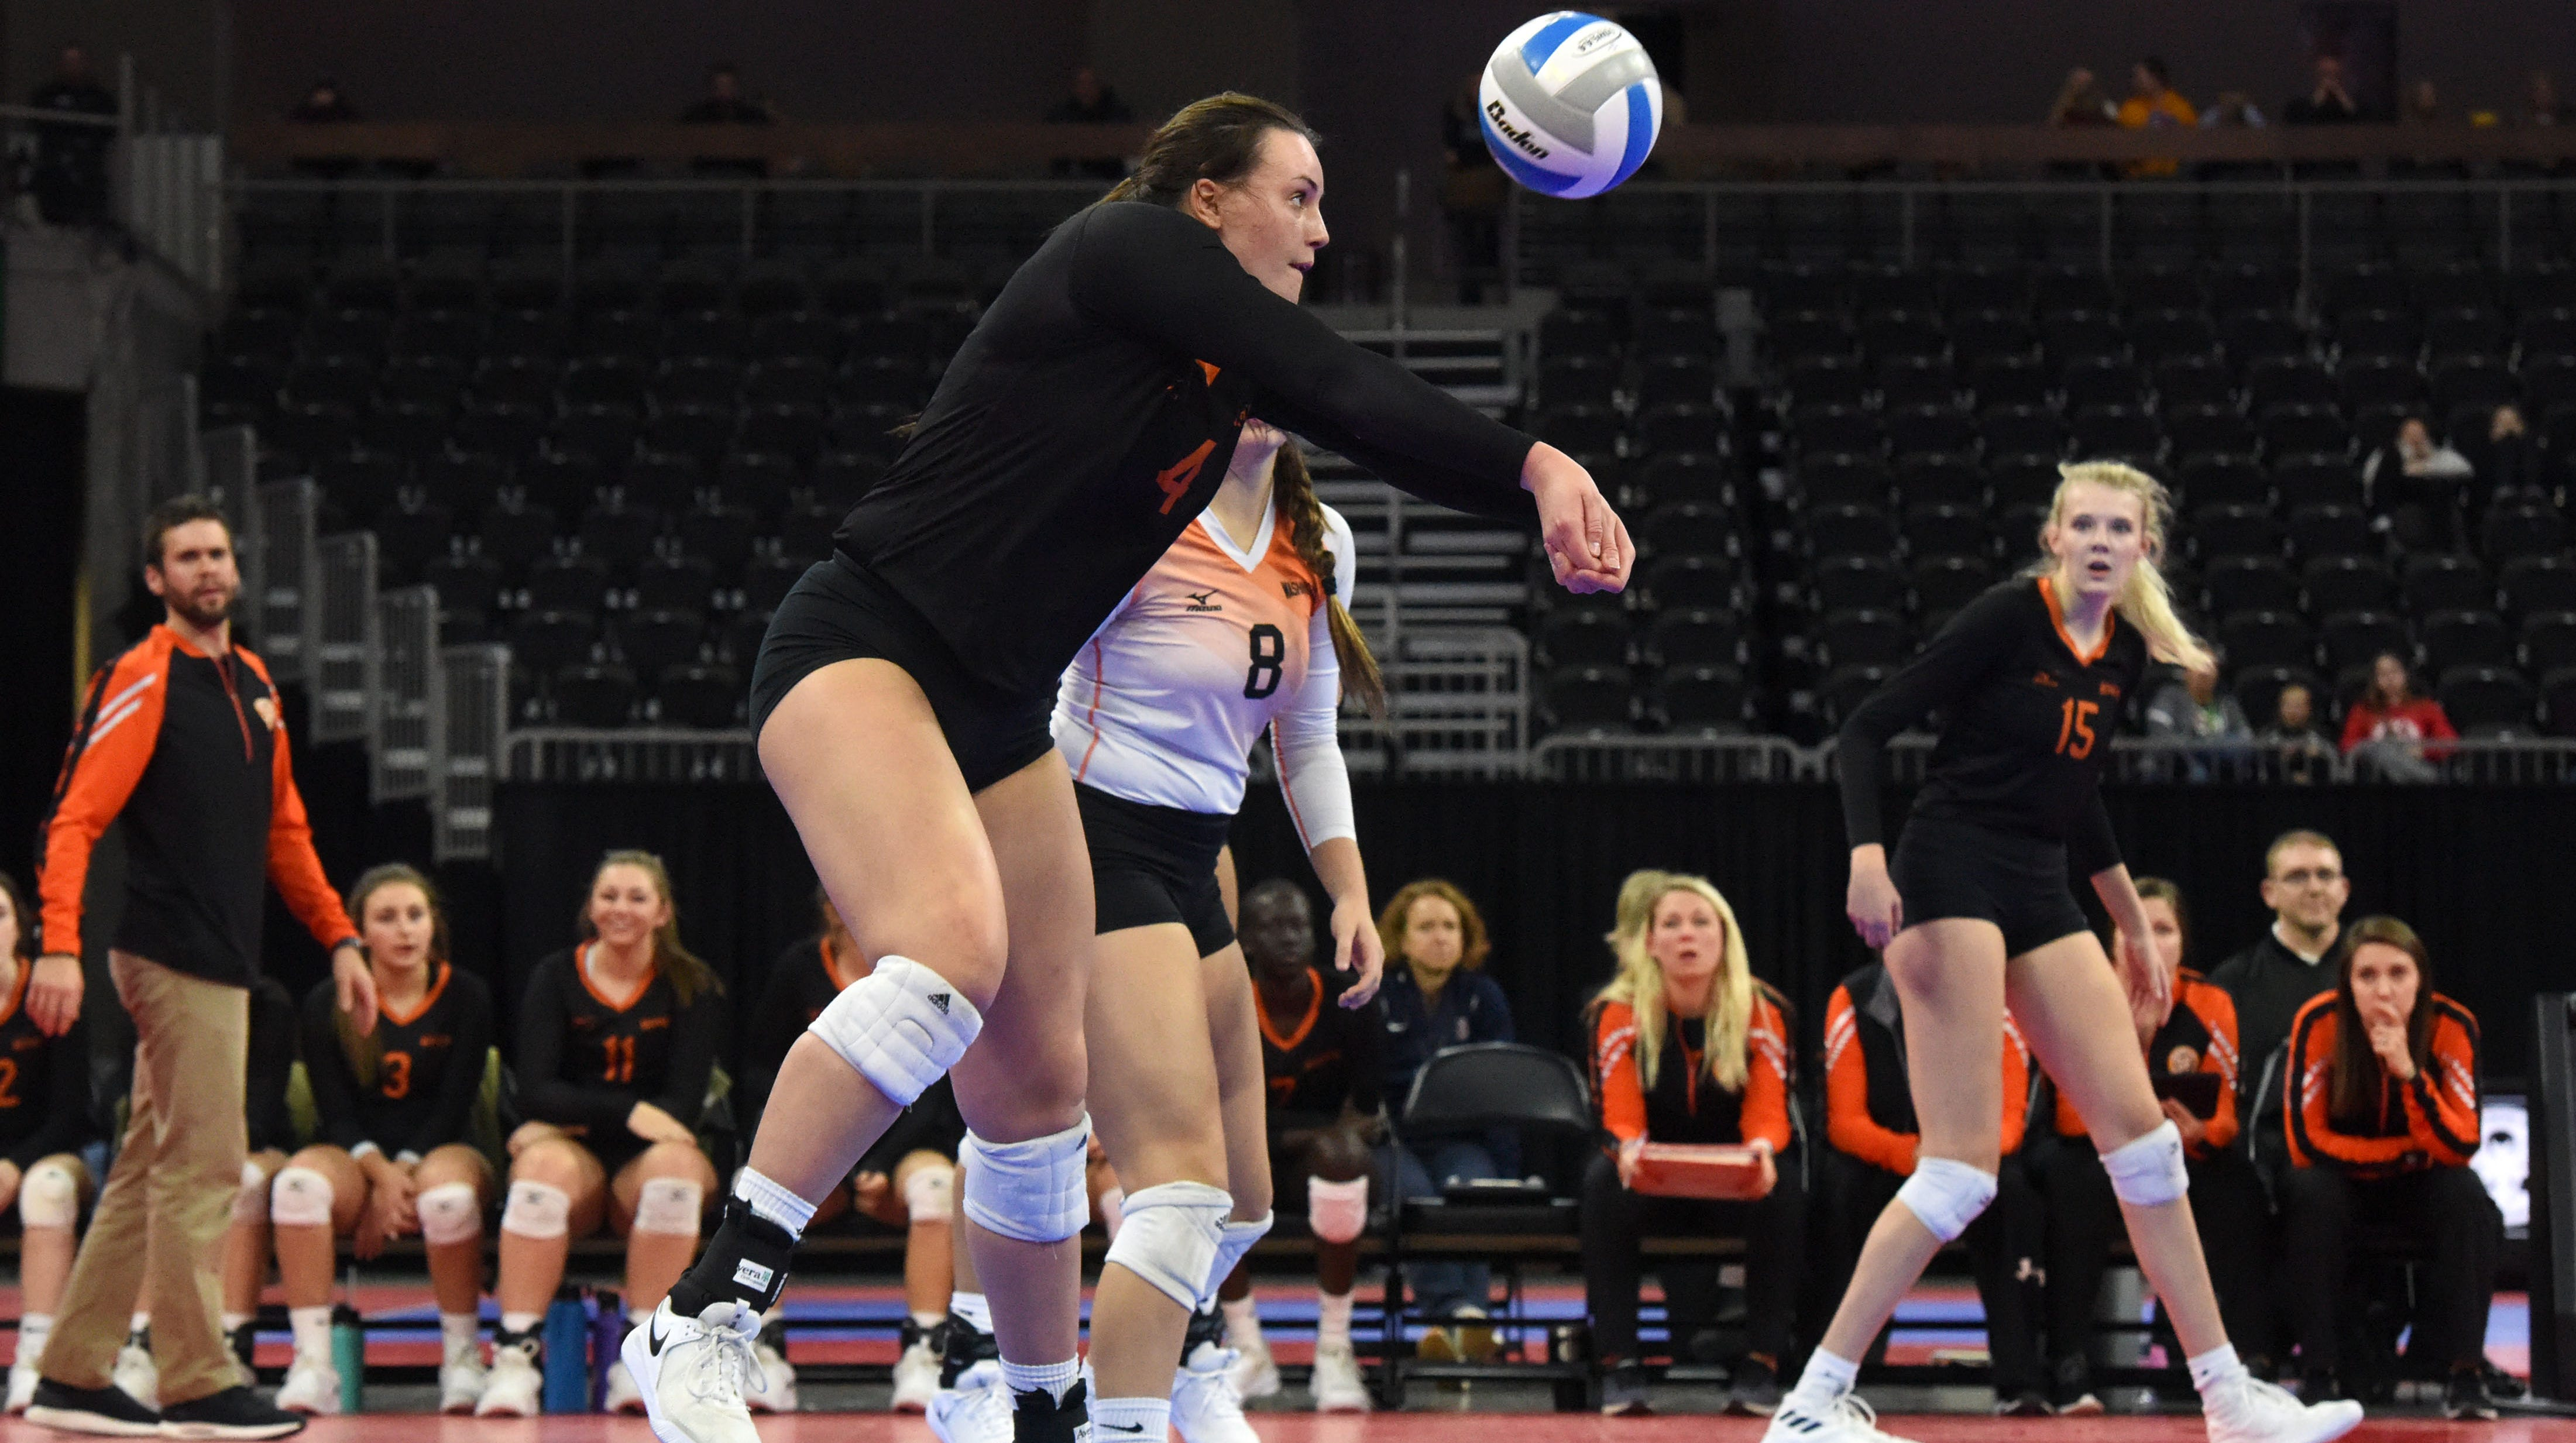 Washington's Lily Bartling (4) bumps the ball during a match against Rapid City, Saturday, Nov. 17, 2018, at the Denny Sanford Premier Center in Sioux Falls, S.D.